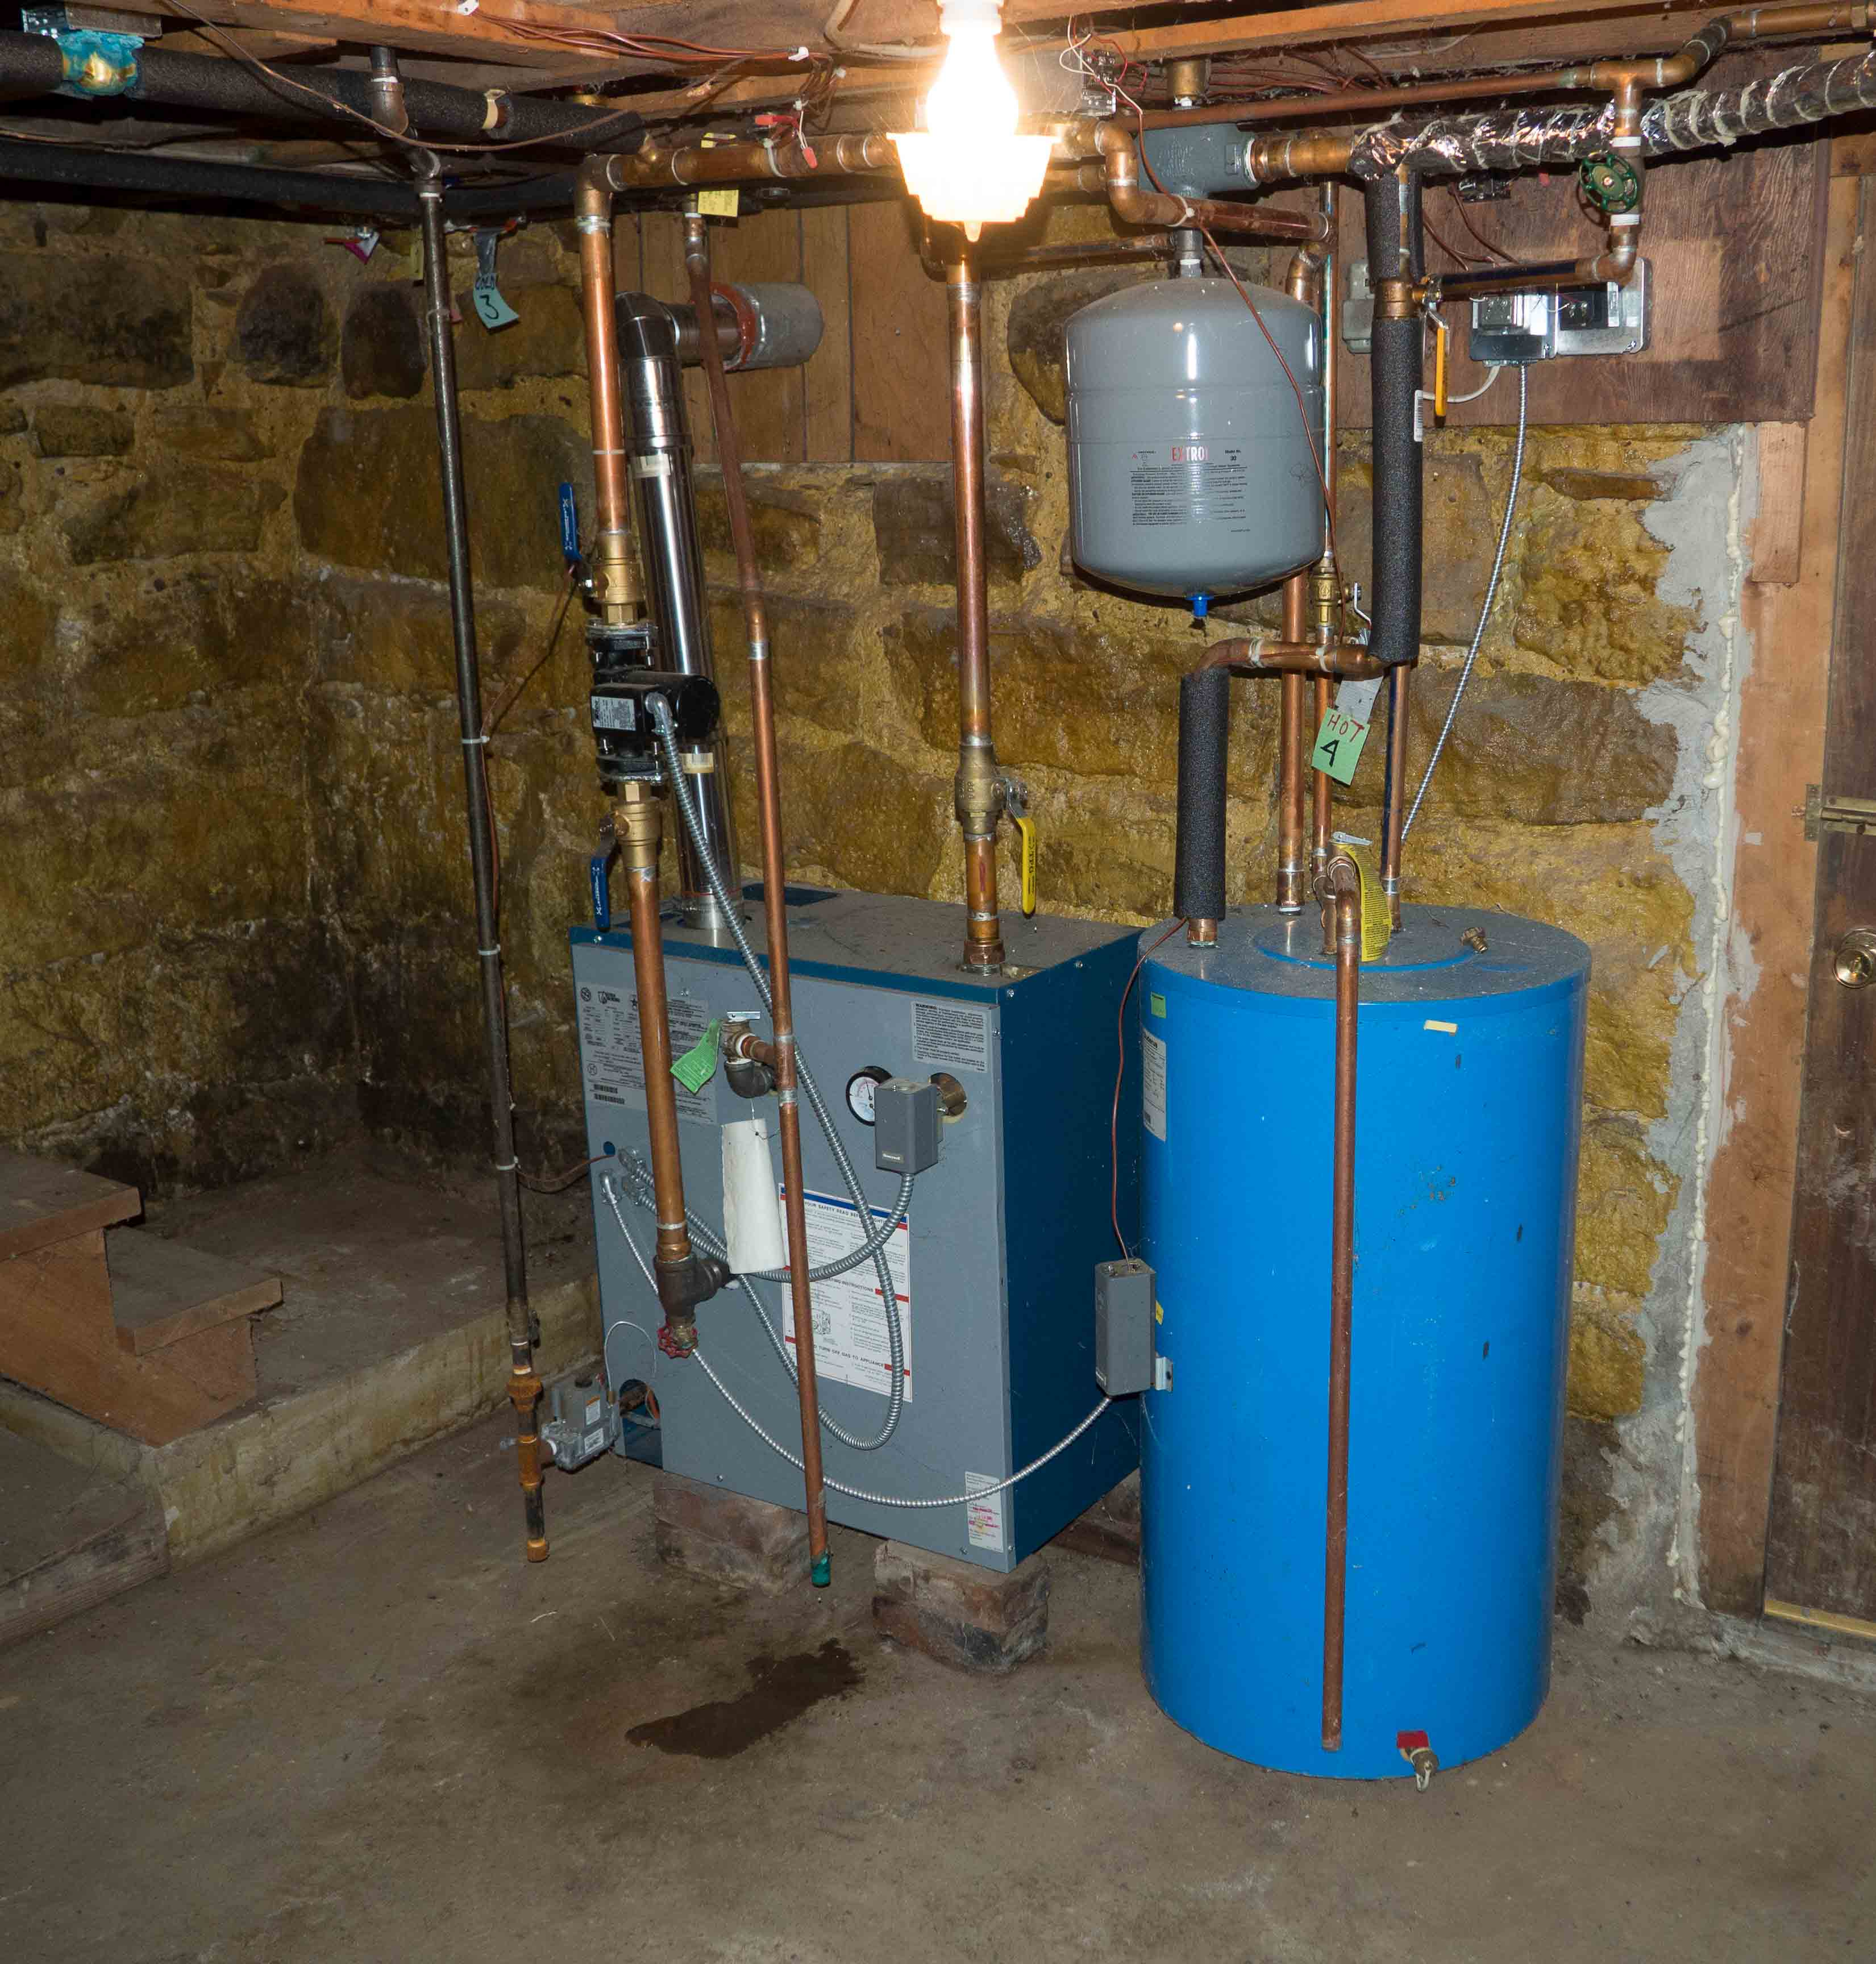 Buderus Indirect Water Heater Problems Tyres2c